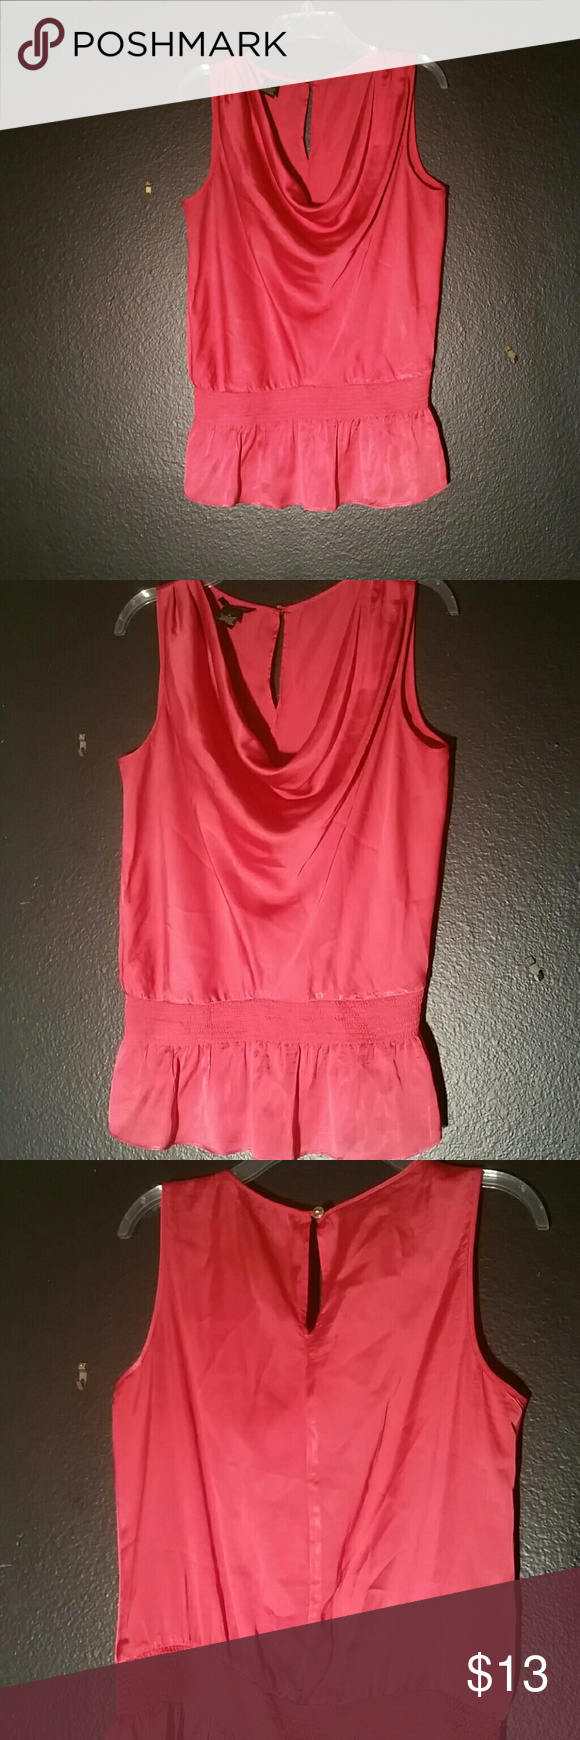 Chic Red Blouse Red, sleeveless, shirt with a drape neckline, elastic waist and a keyhole on the back. Silky to the touch. 100% polyester Spense Tops Blouses